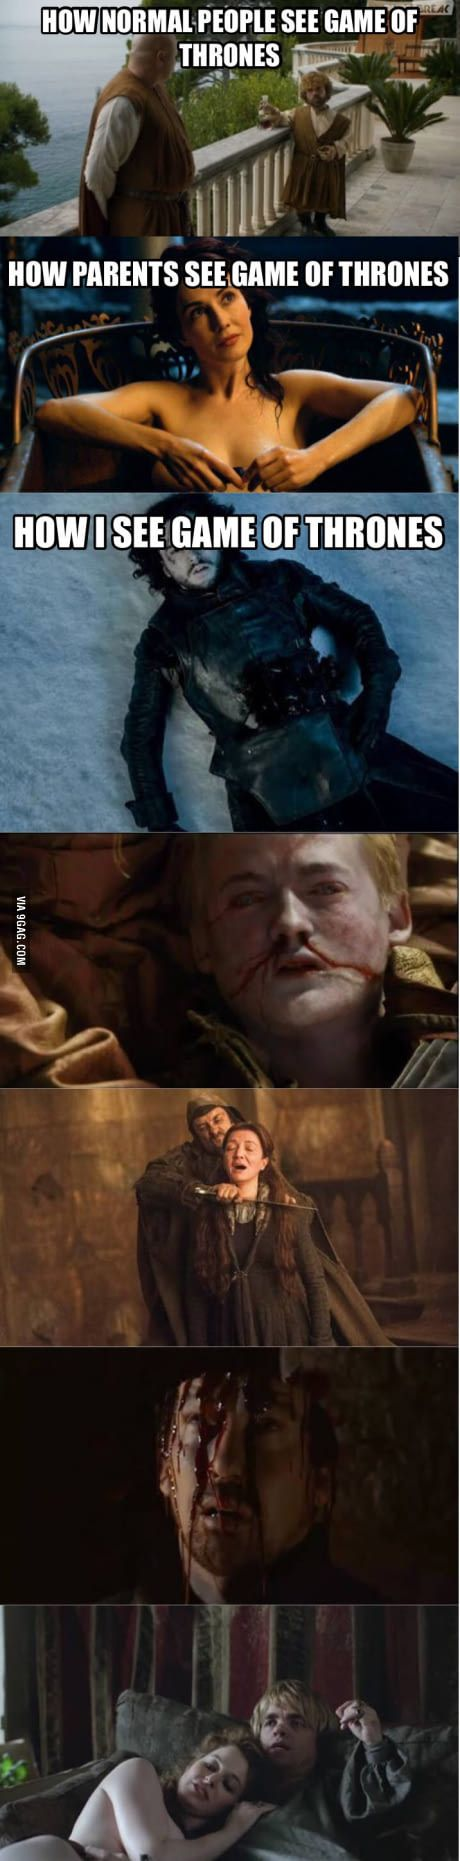 How I see Game of Thrones